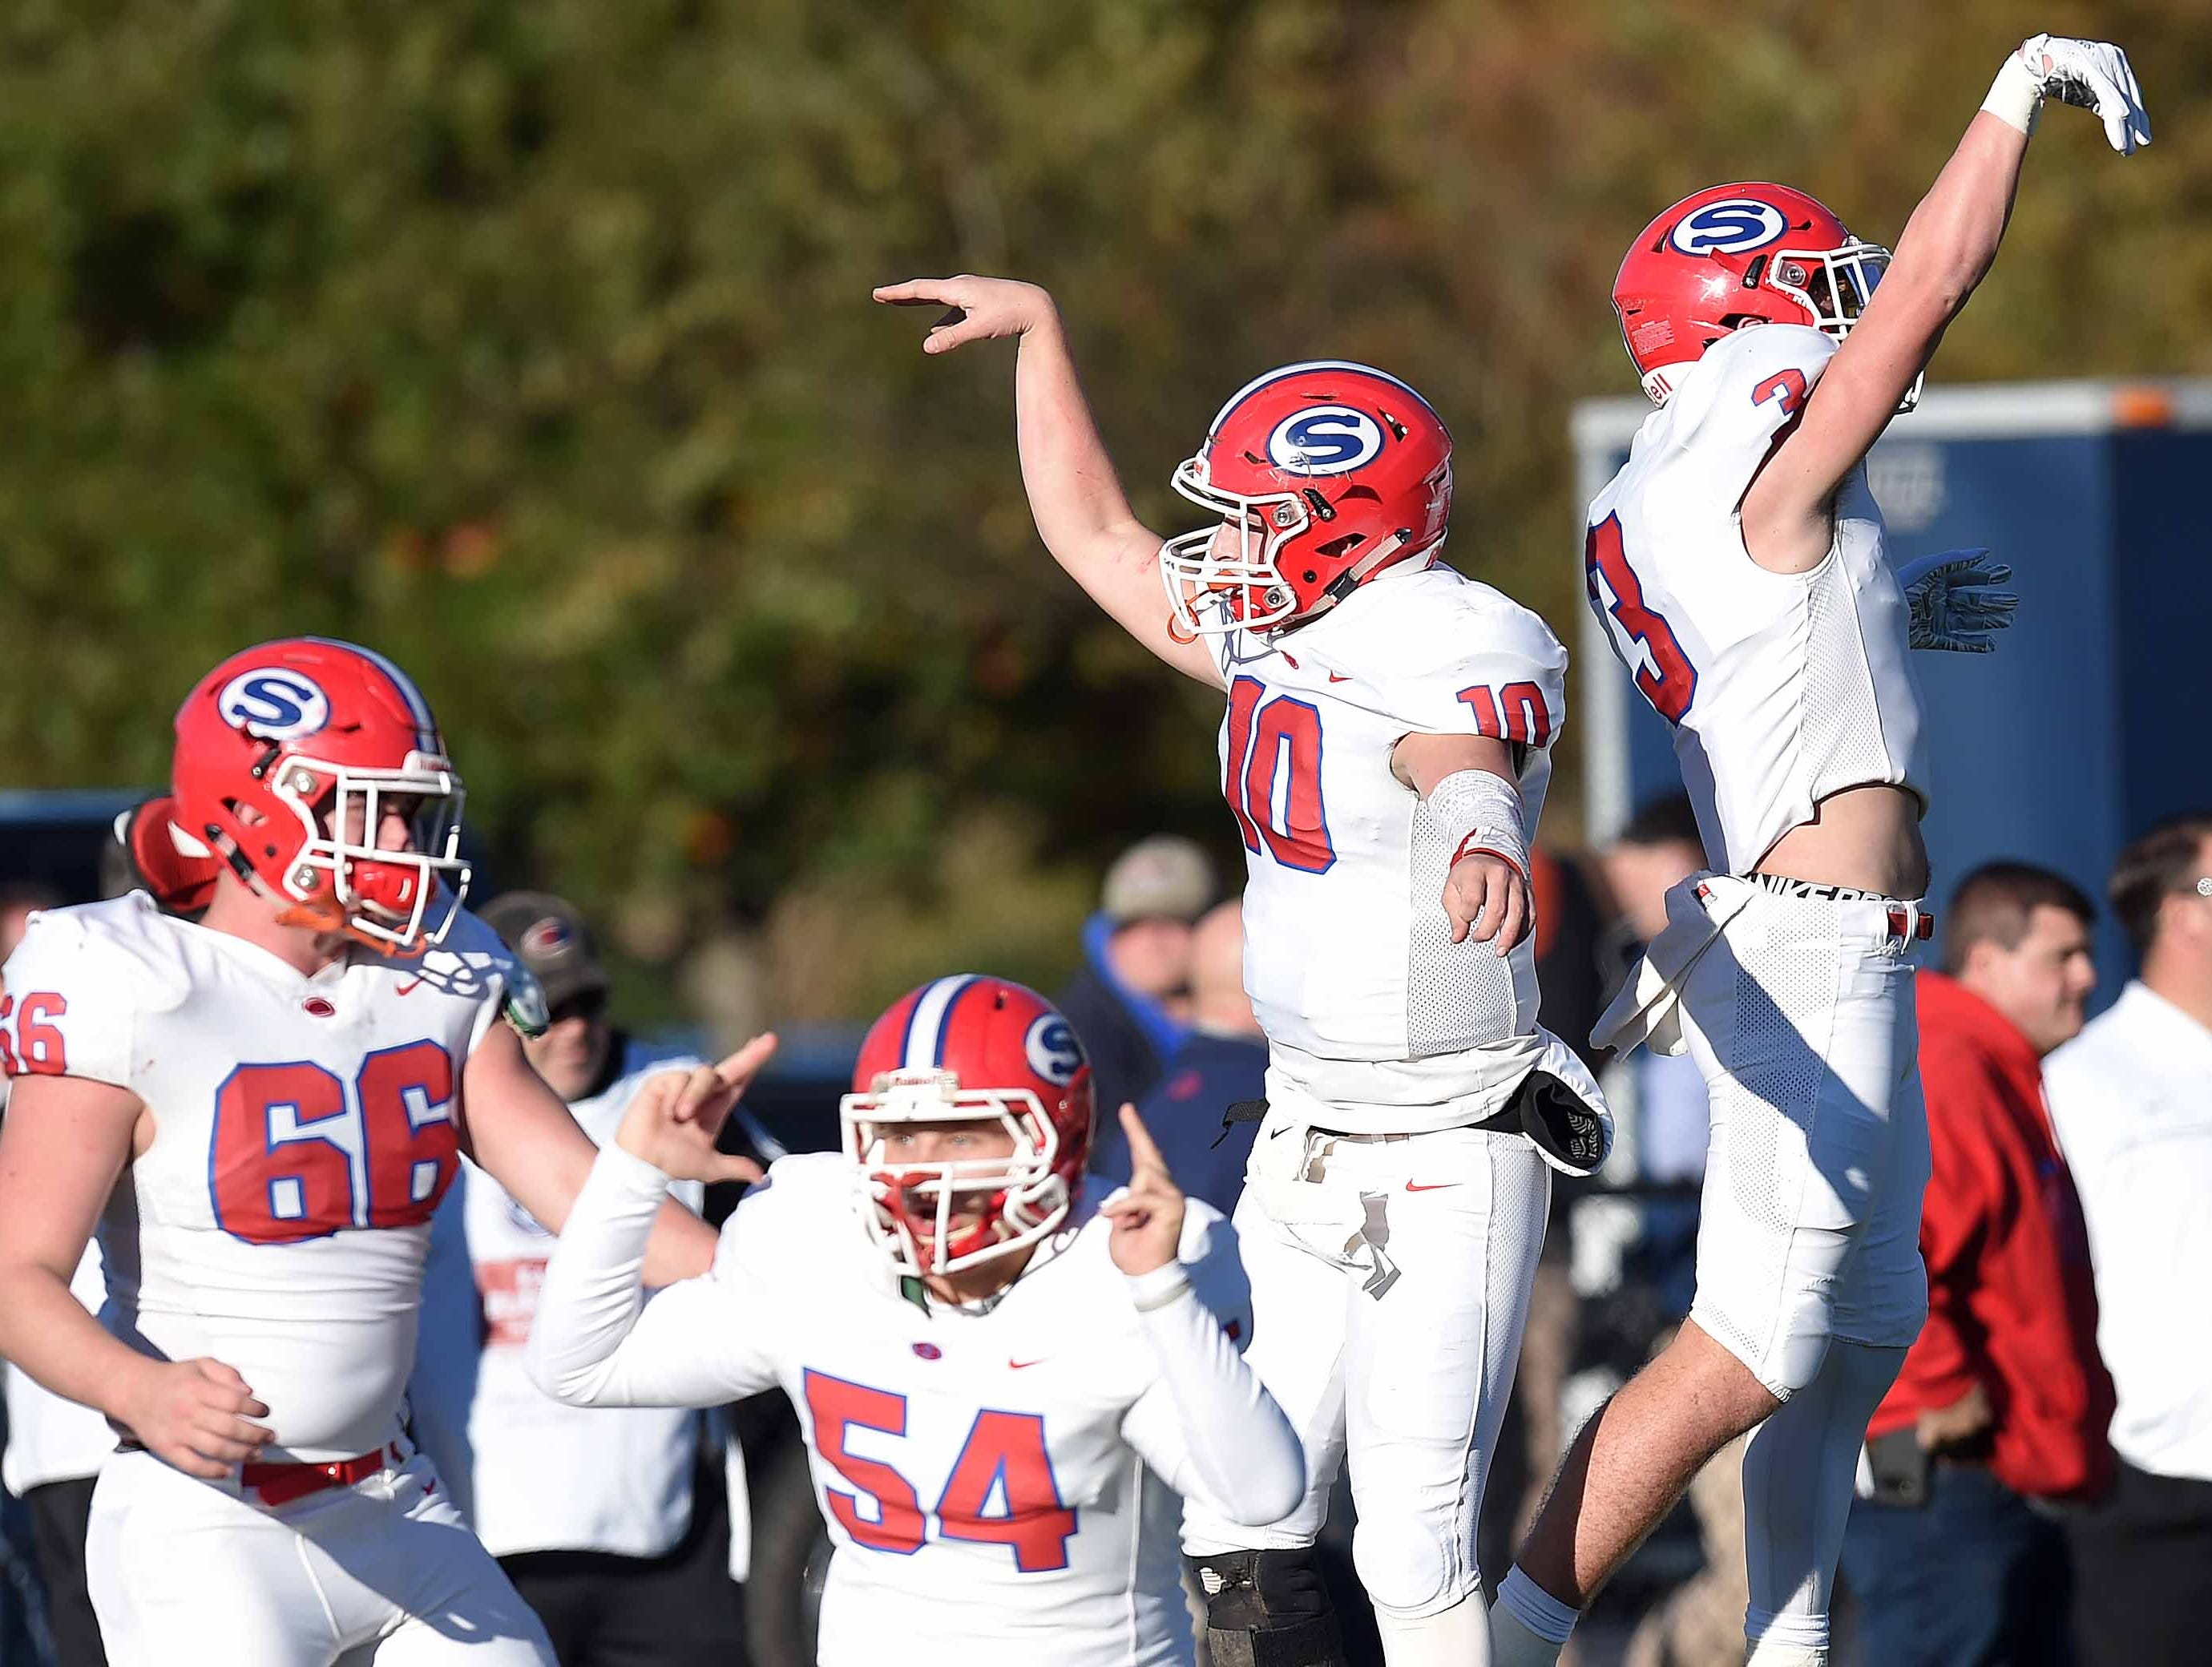 Simpson Academy celebrates a touchdown against Lamar School on Thursday, November 15, 2018, in the MAIS Class AAAA-D2 Football Championship at Jackson Academy in Jackson, Miss.